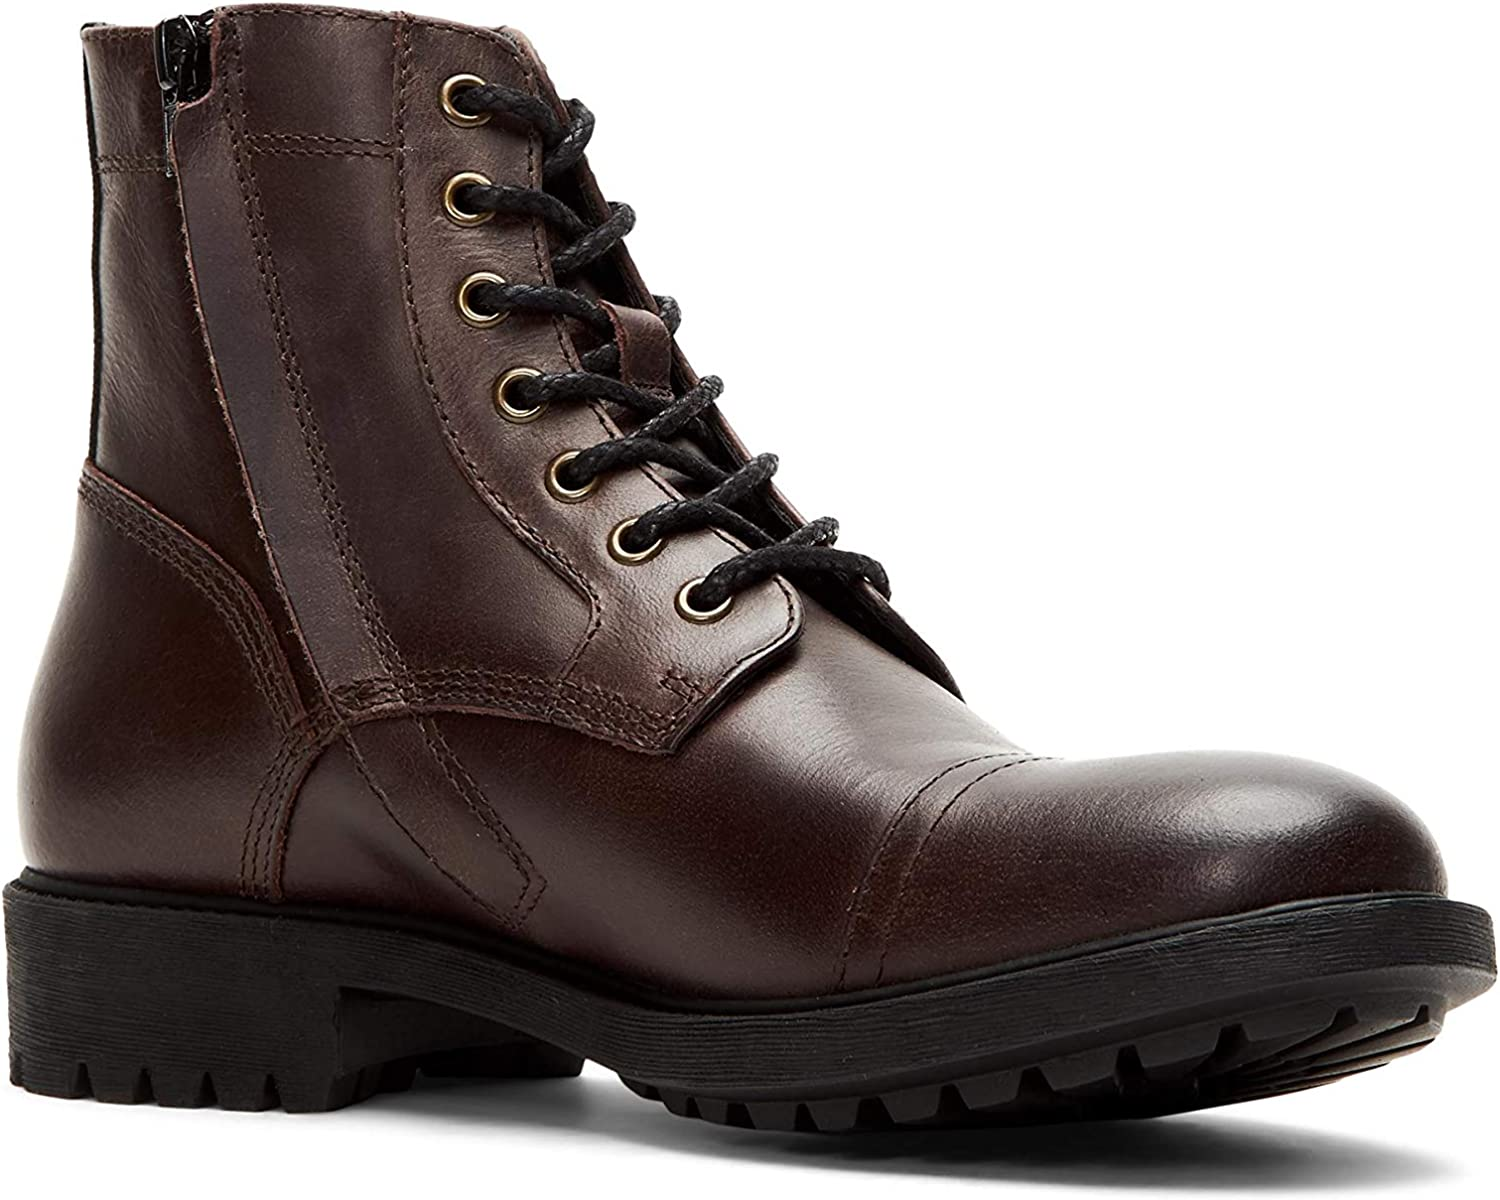 Frye and Co Mens Cody Lace Up Fashion Boot